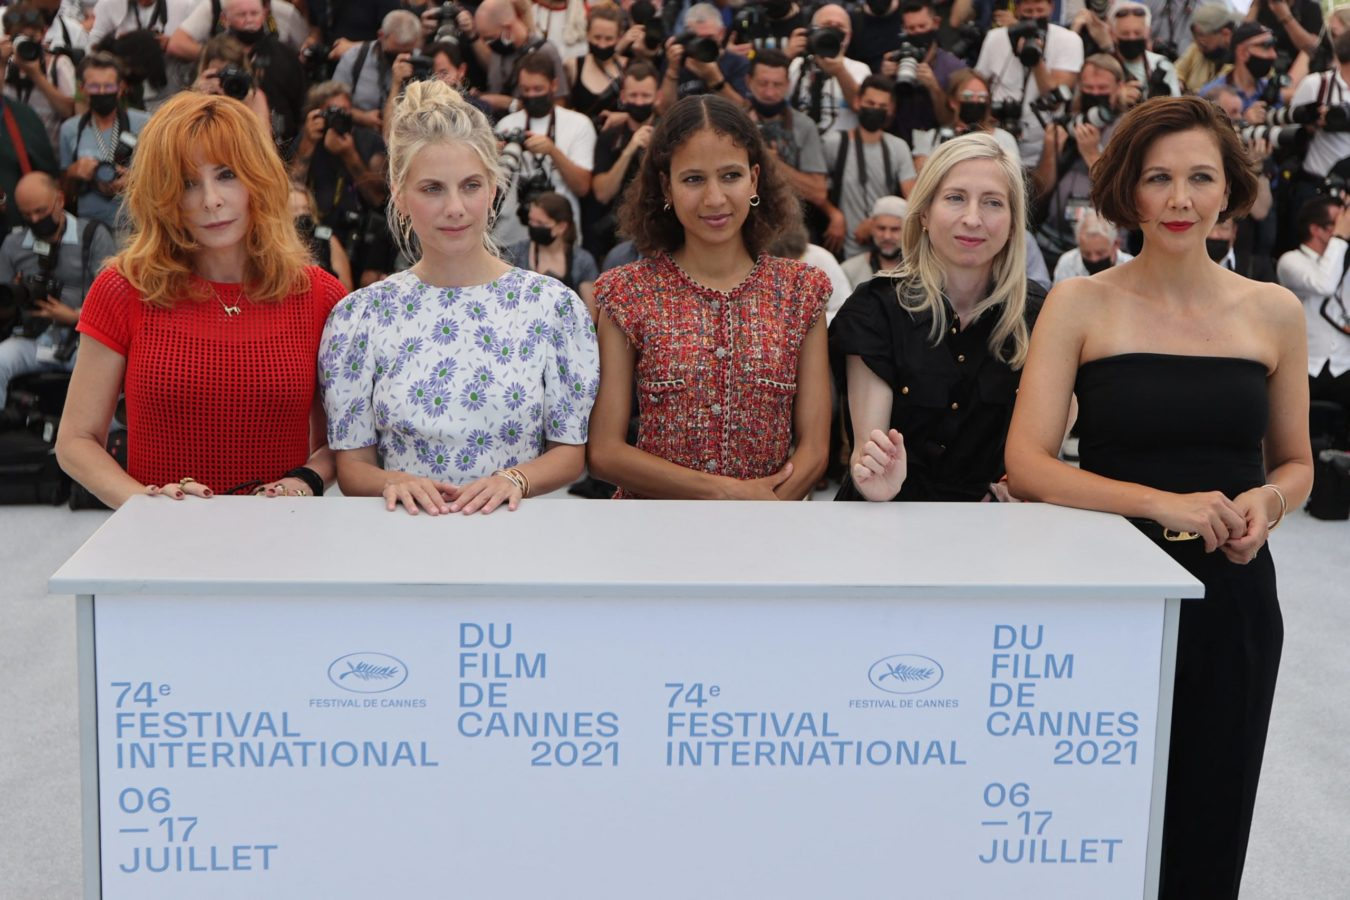 Meet the five female jury members at the Cannes Film Festival 2021